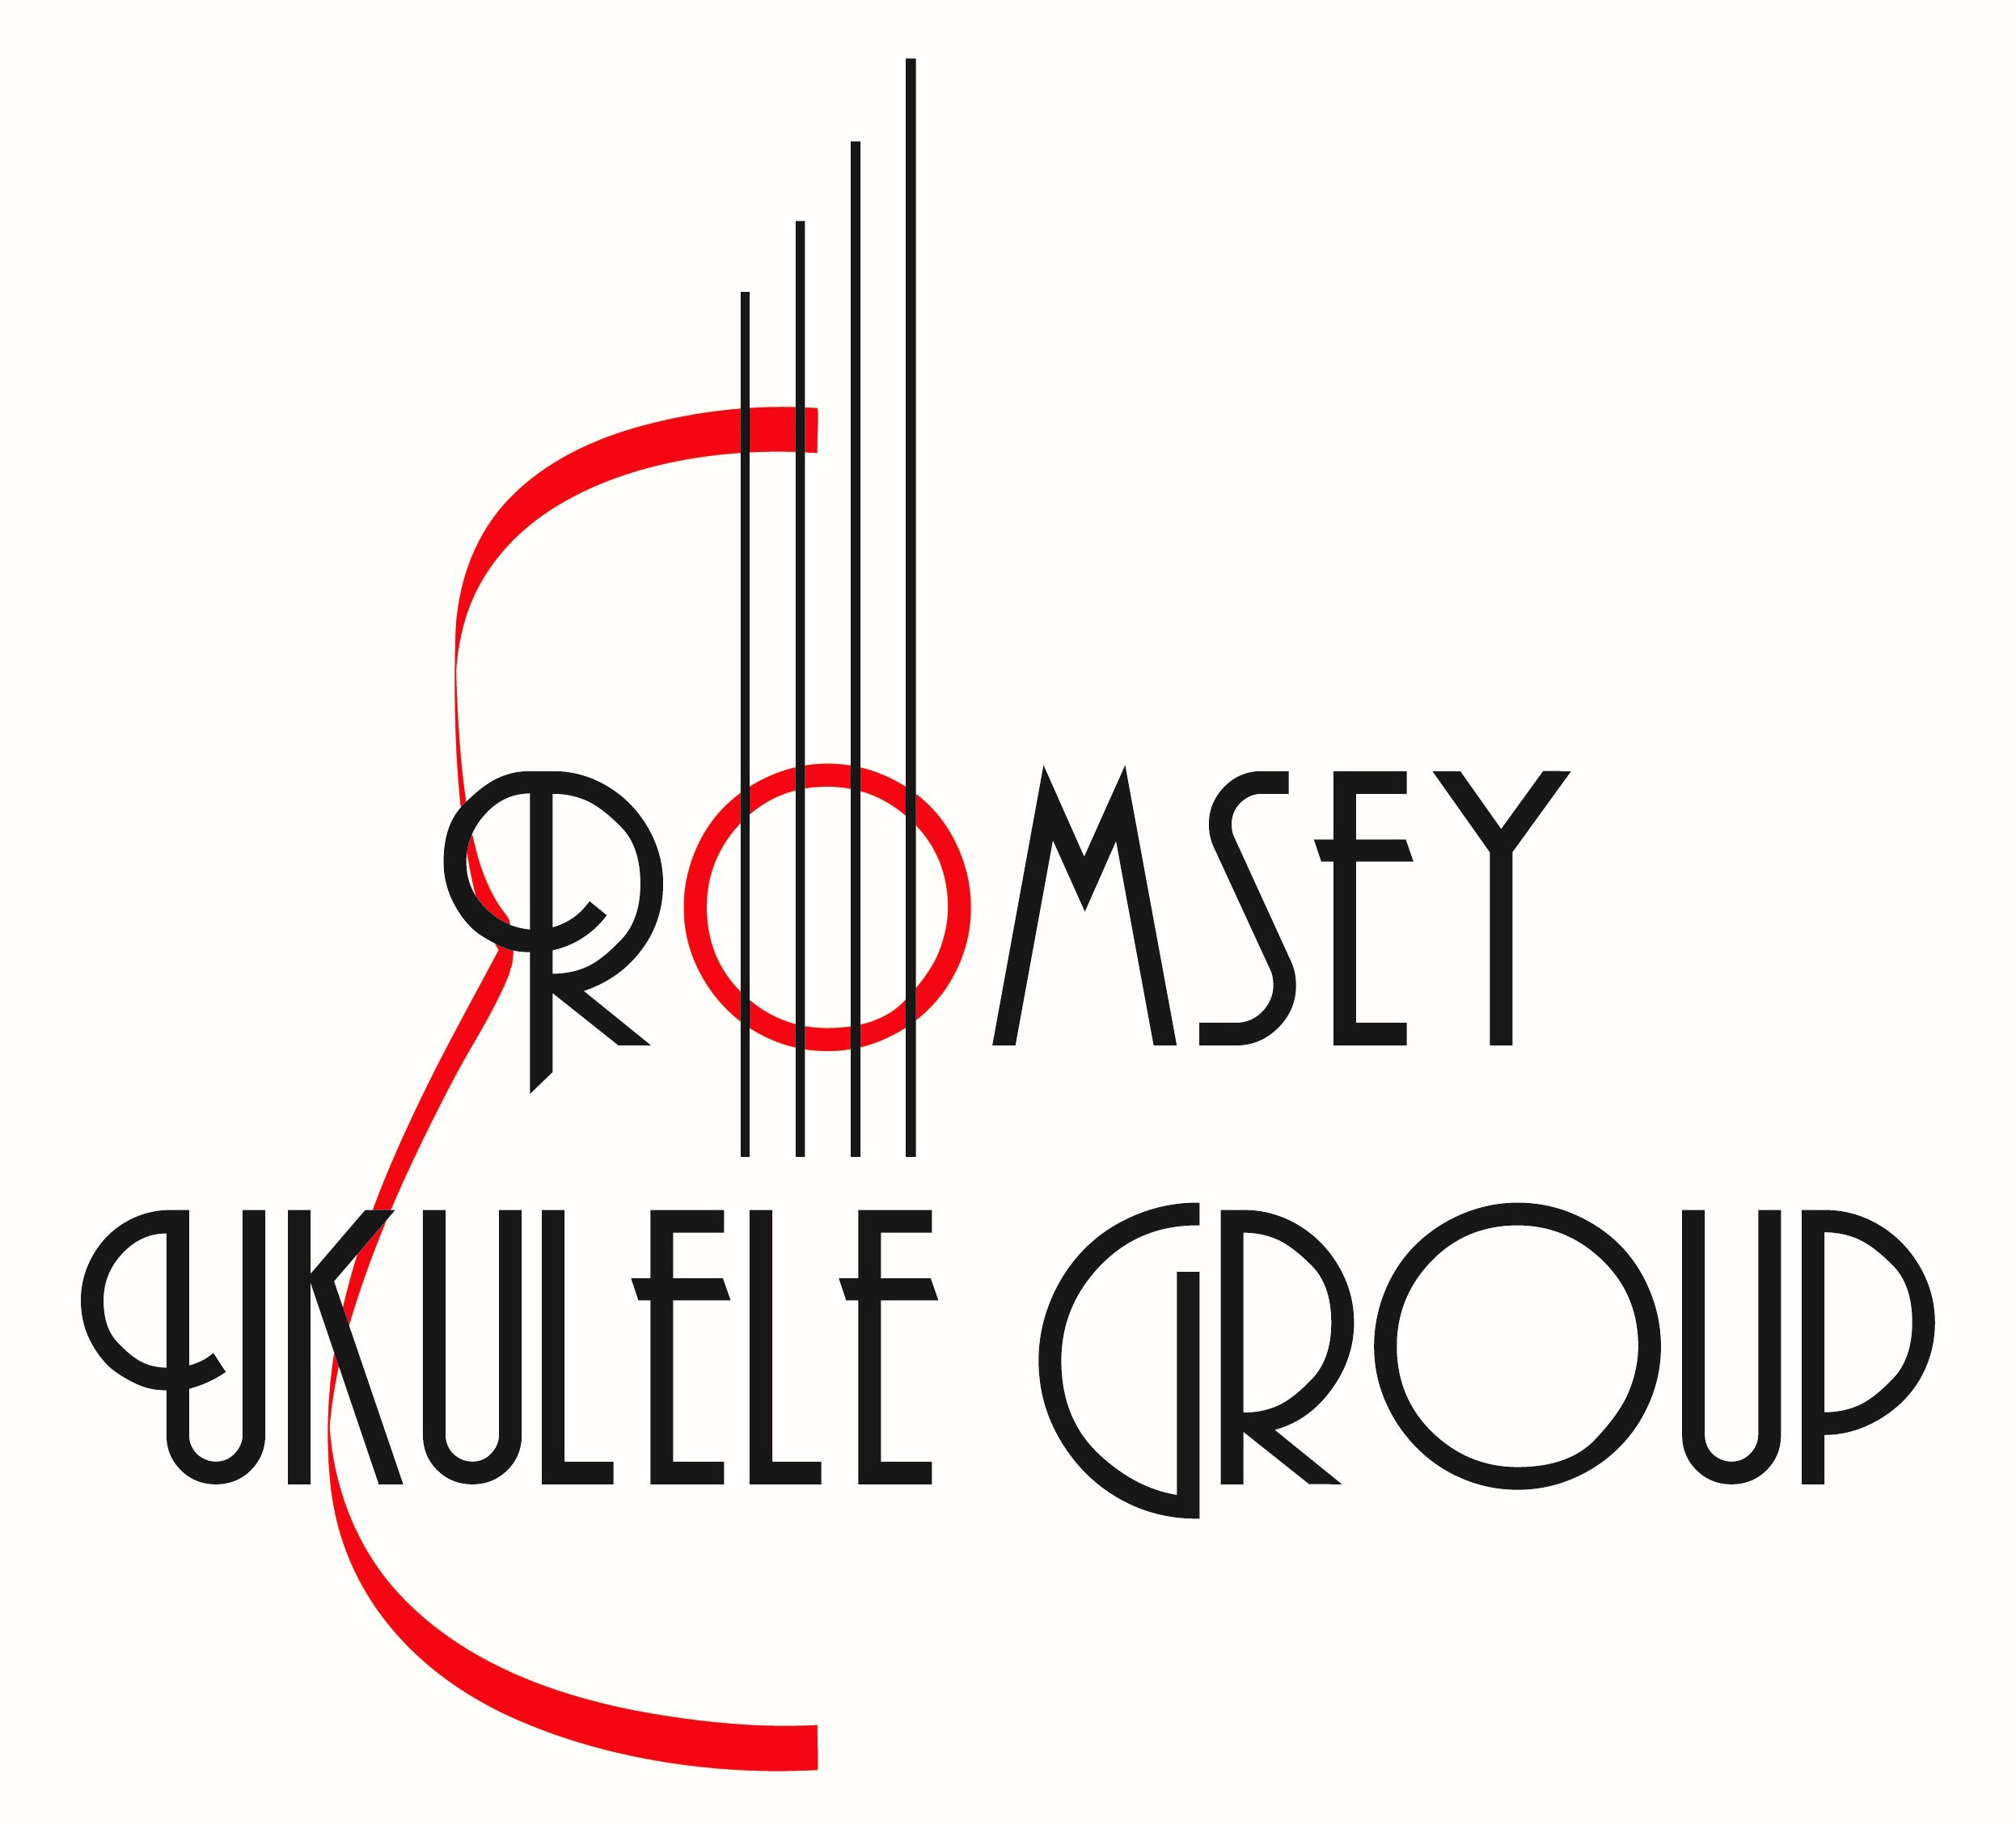 Romsey Ukulele Group